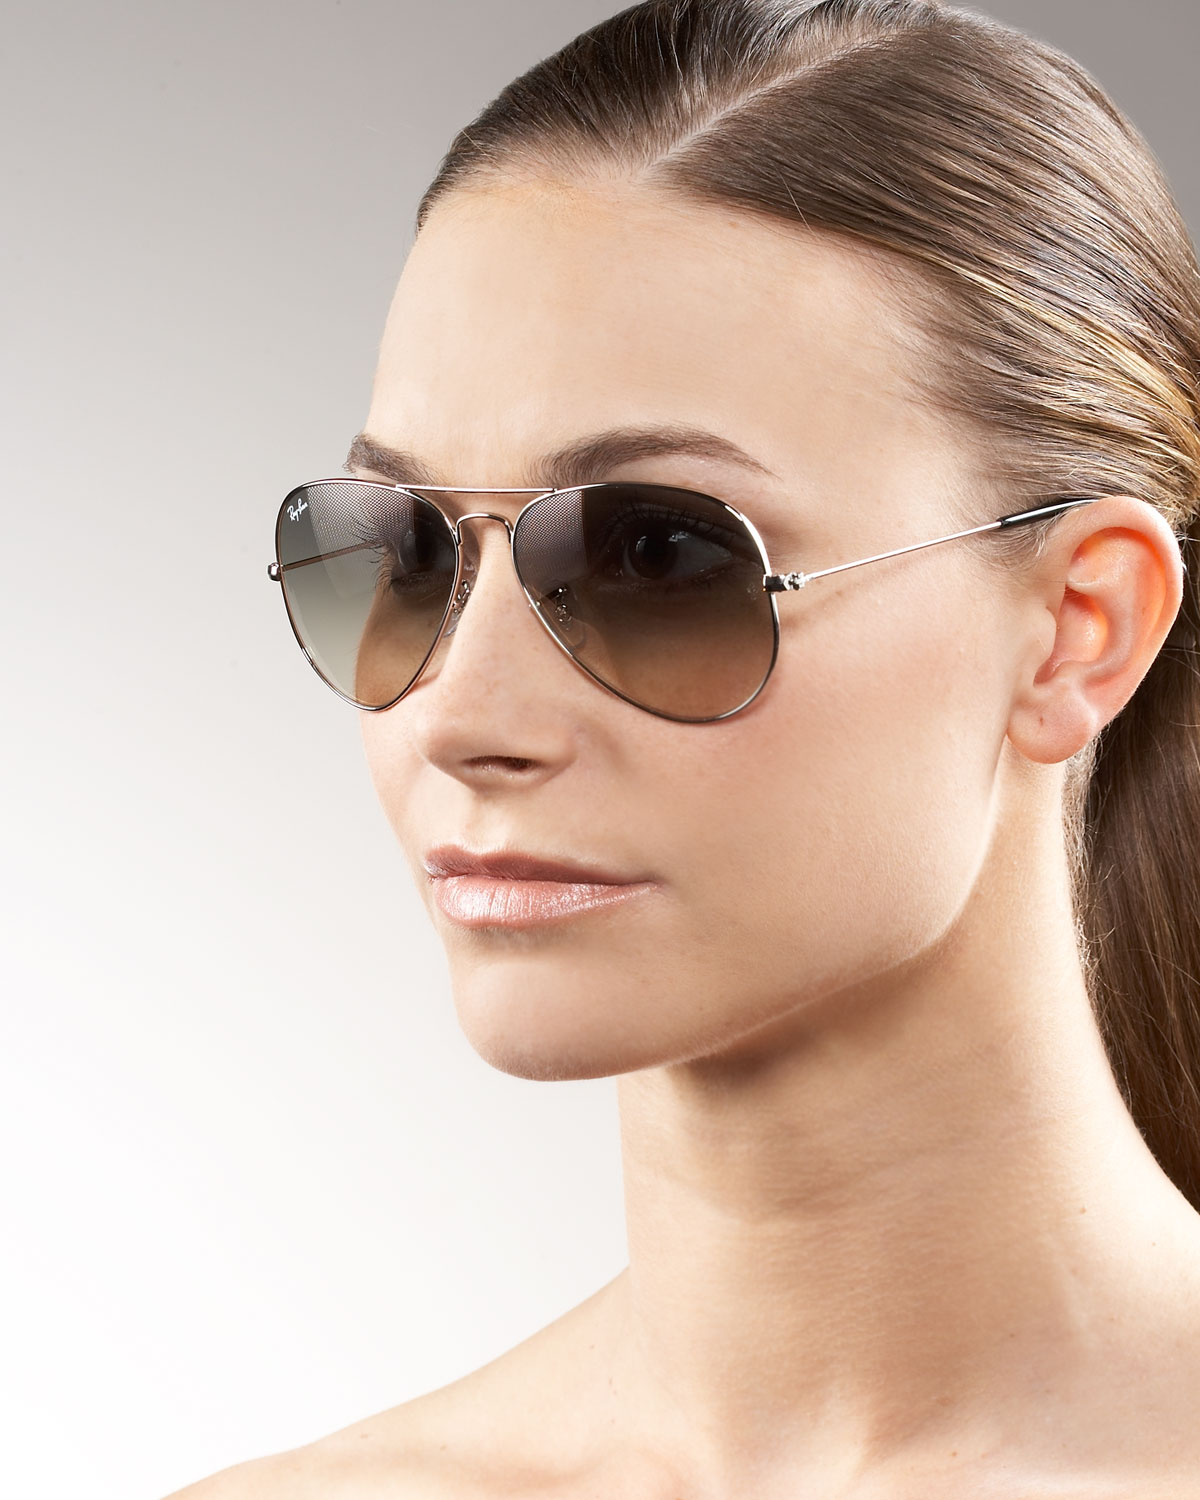 oversized aviators ray ban  Ray-ban Classic Aviator Sunglasses in Brown